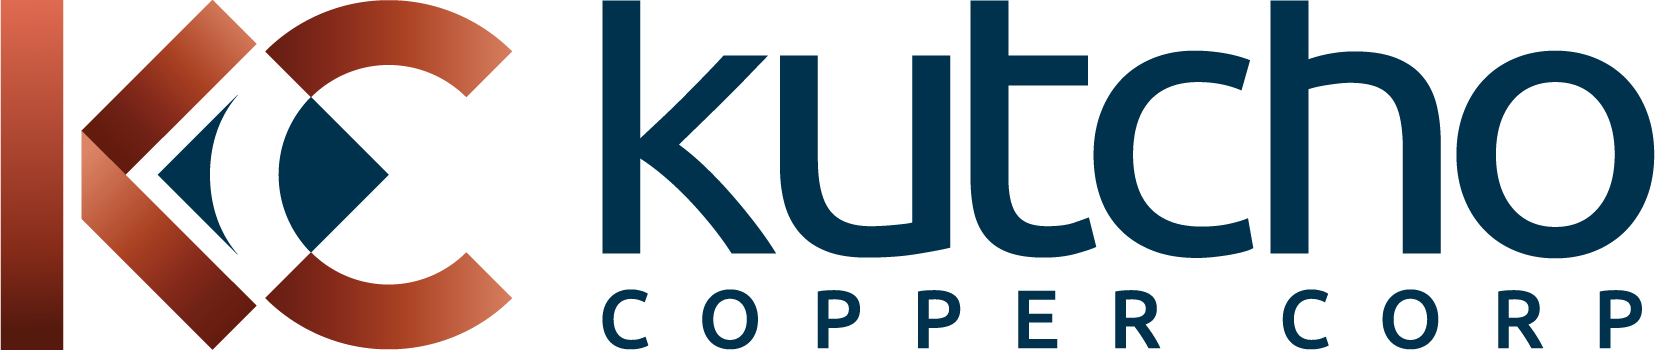 Kutcho Copper Provides Corporate Update